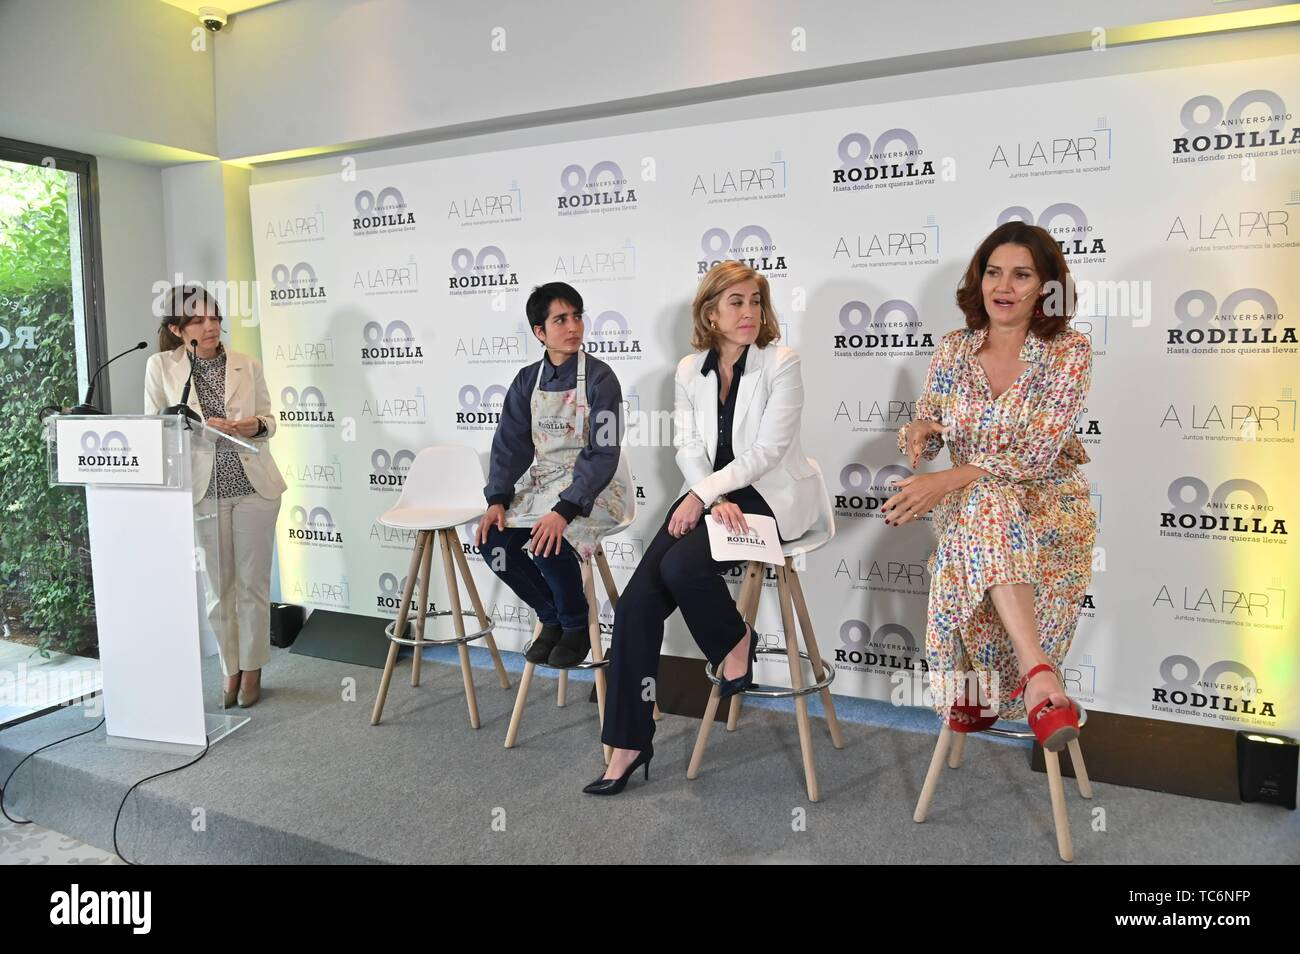 Madrid, Spain. 06th June, 2019. Samantha Vallejo Nagera during presentation of colaboration of A la Par Foundation and Rodilla in Madrid on Thursday, 06 June 2019. Credit: CORDON PRESS/Alamy Live News Stock Photo